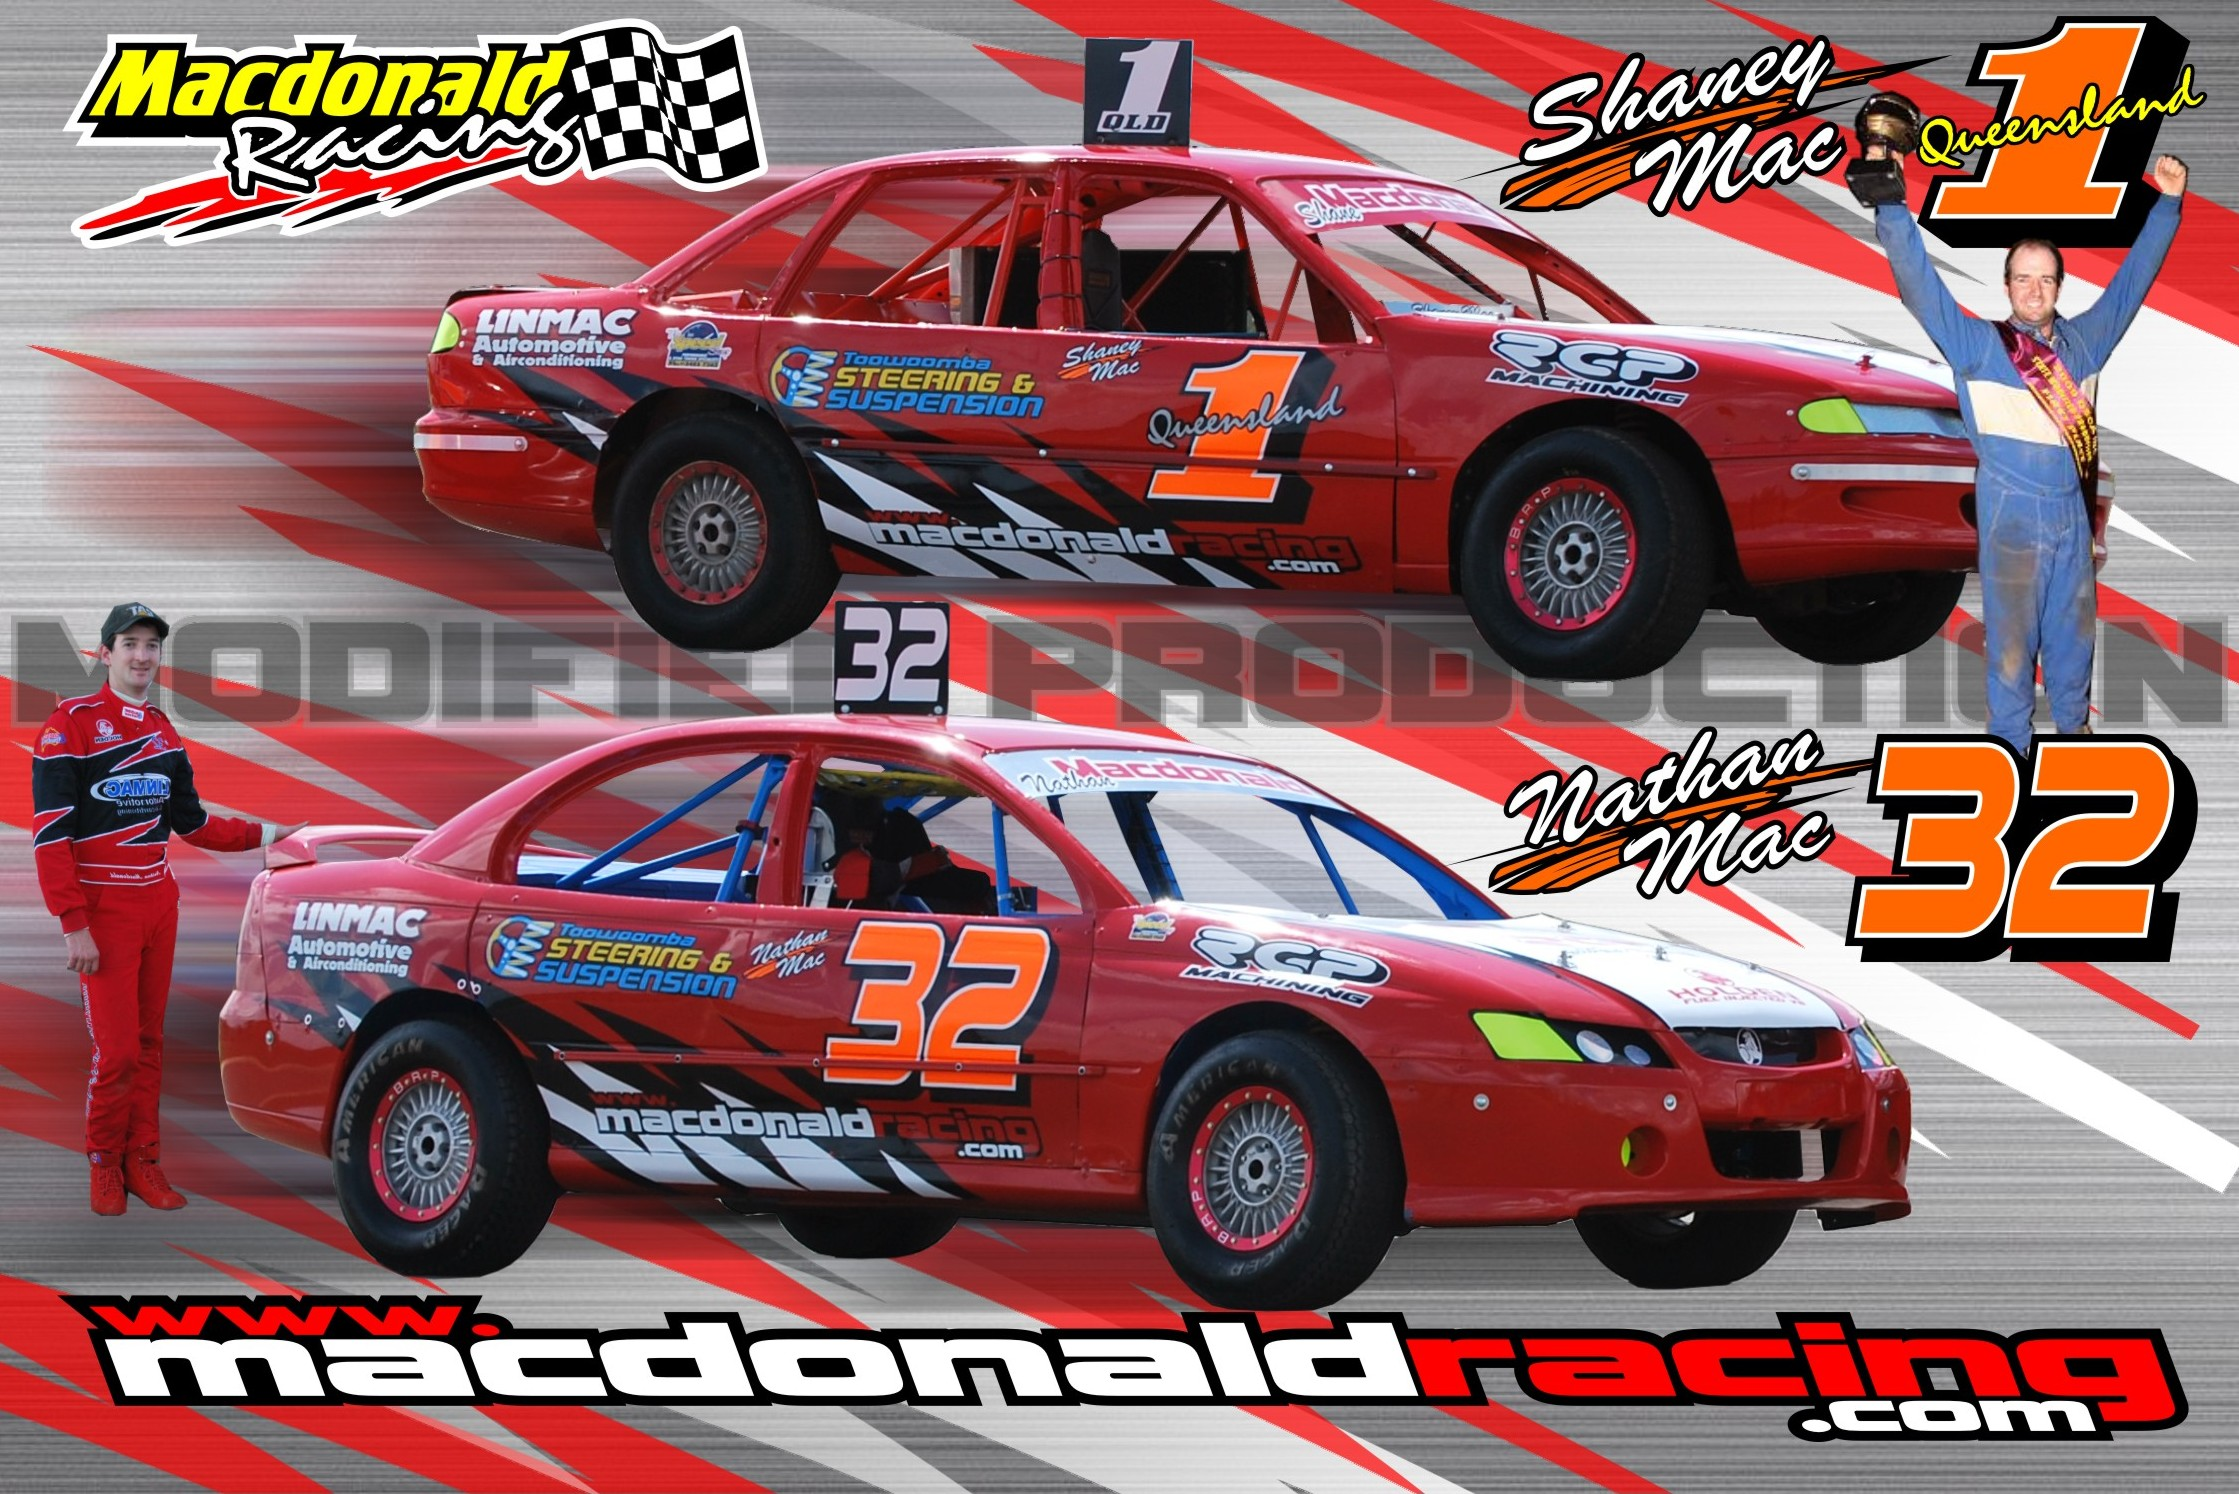 Macdonald Racing Modified Sedans